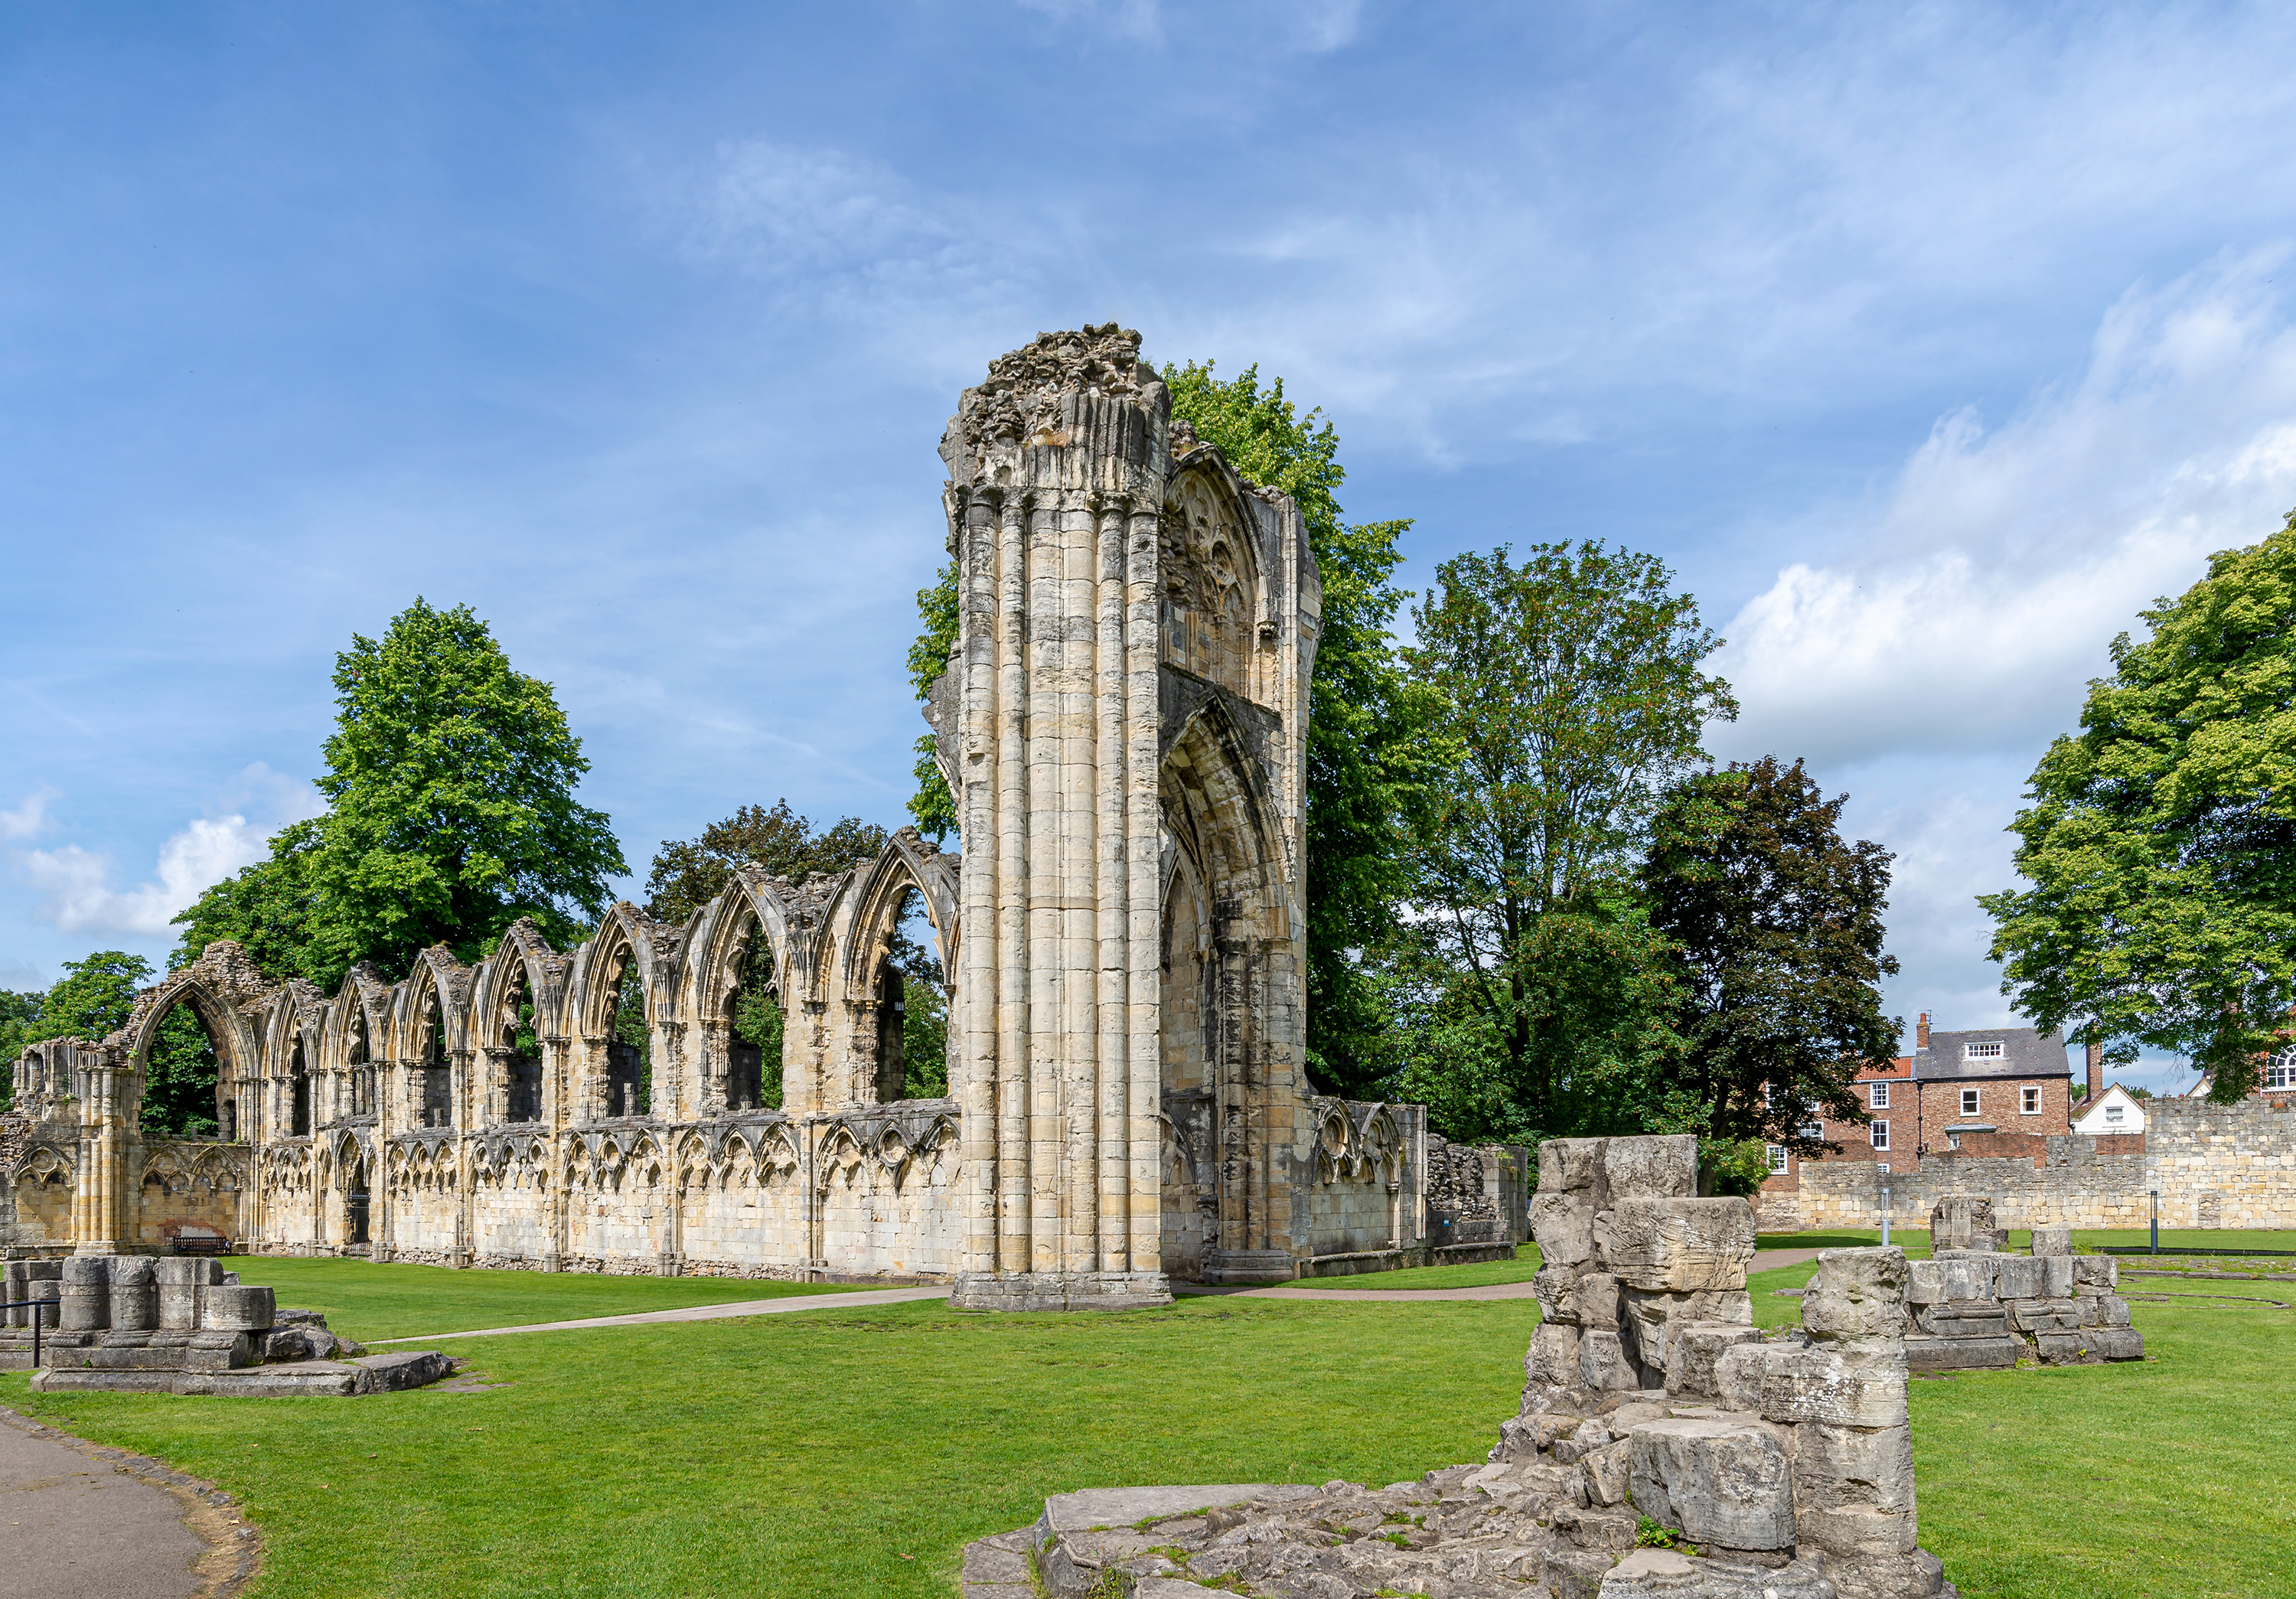 The ancient ruins of St Marys Abbey in York